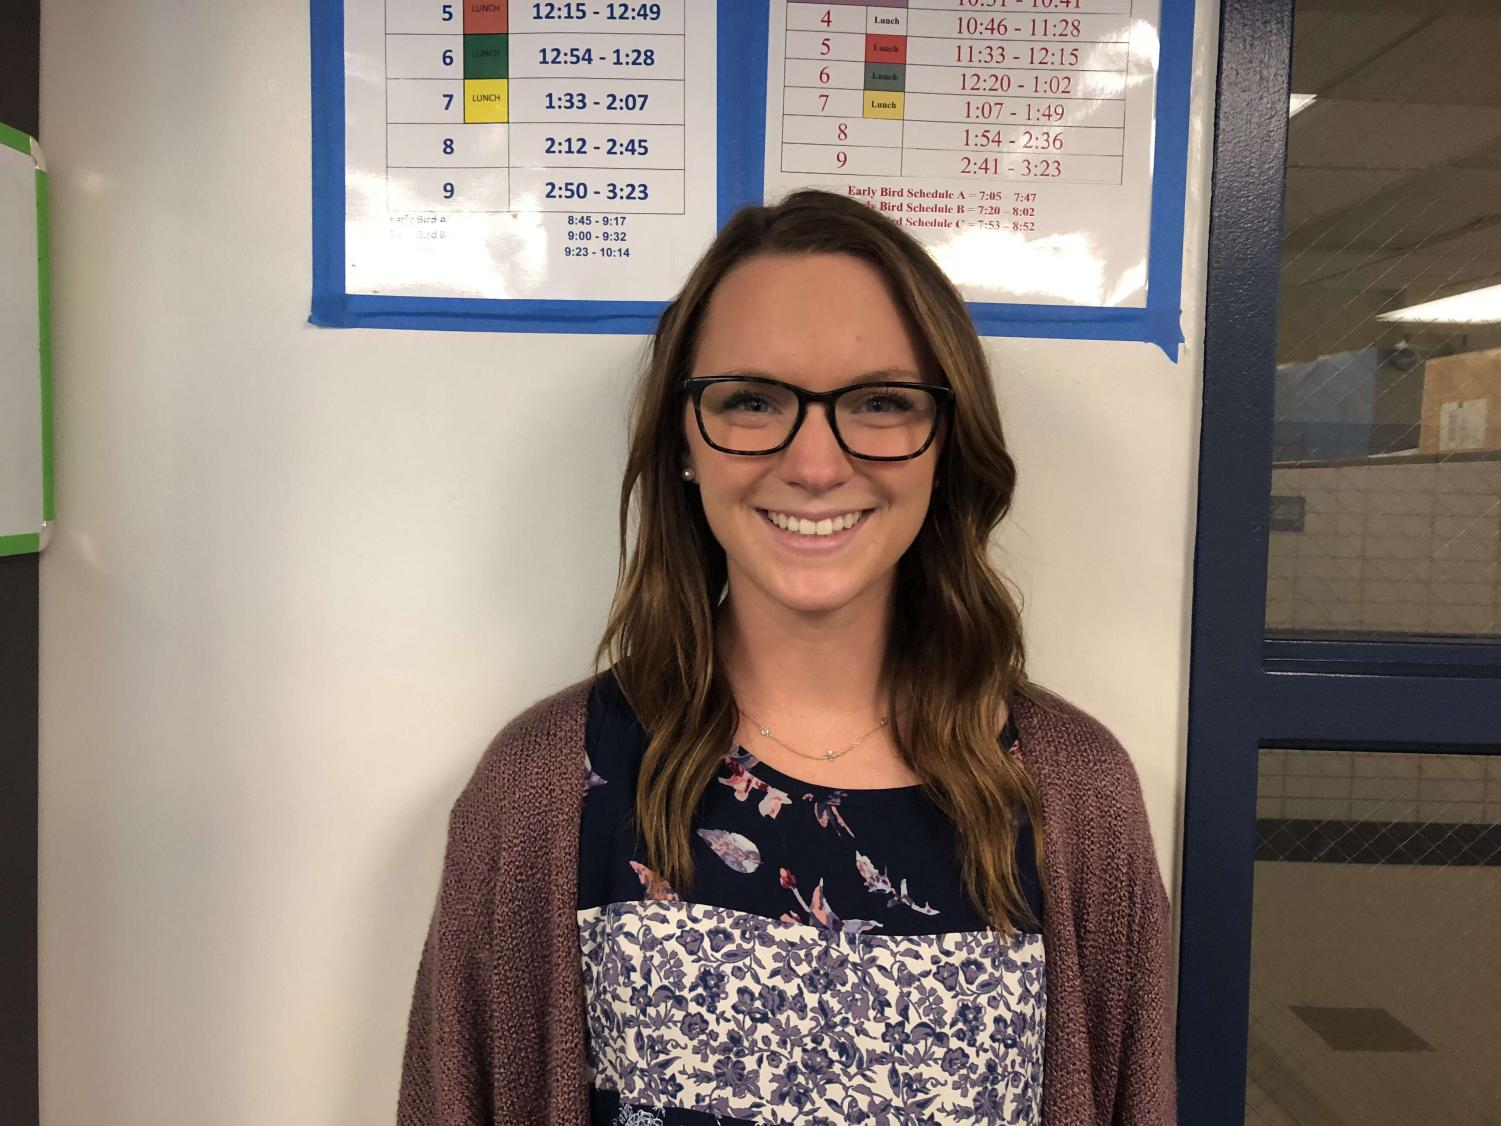 Special Ed teacher and water polo coach Jen Pawelski is ready for the new school year and upcoming season.